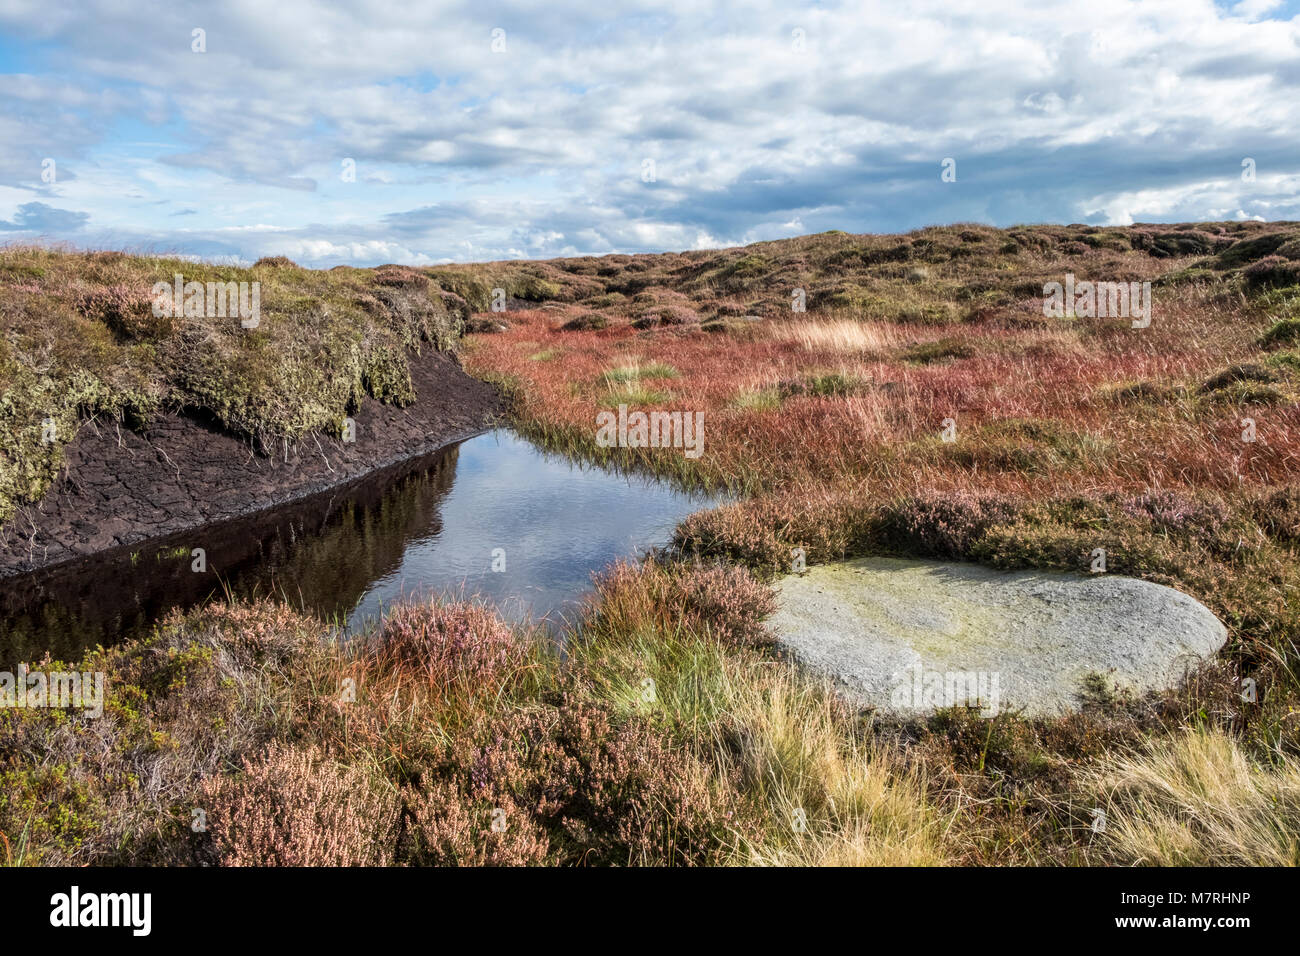 Water and grasses on peat bog moorland, Kinder Scout, Derbyshire, England, UK - Stock Image